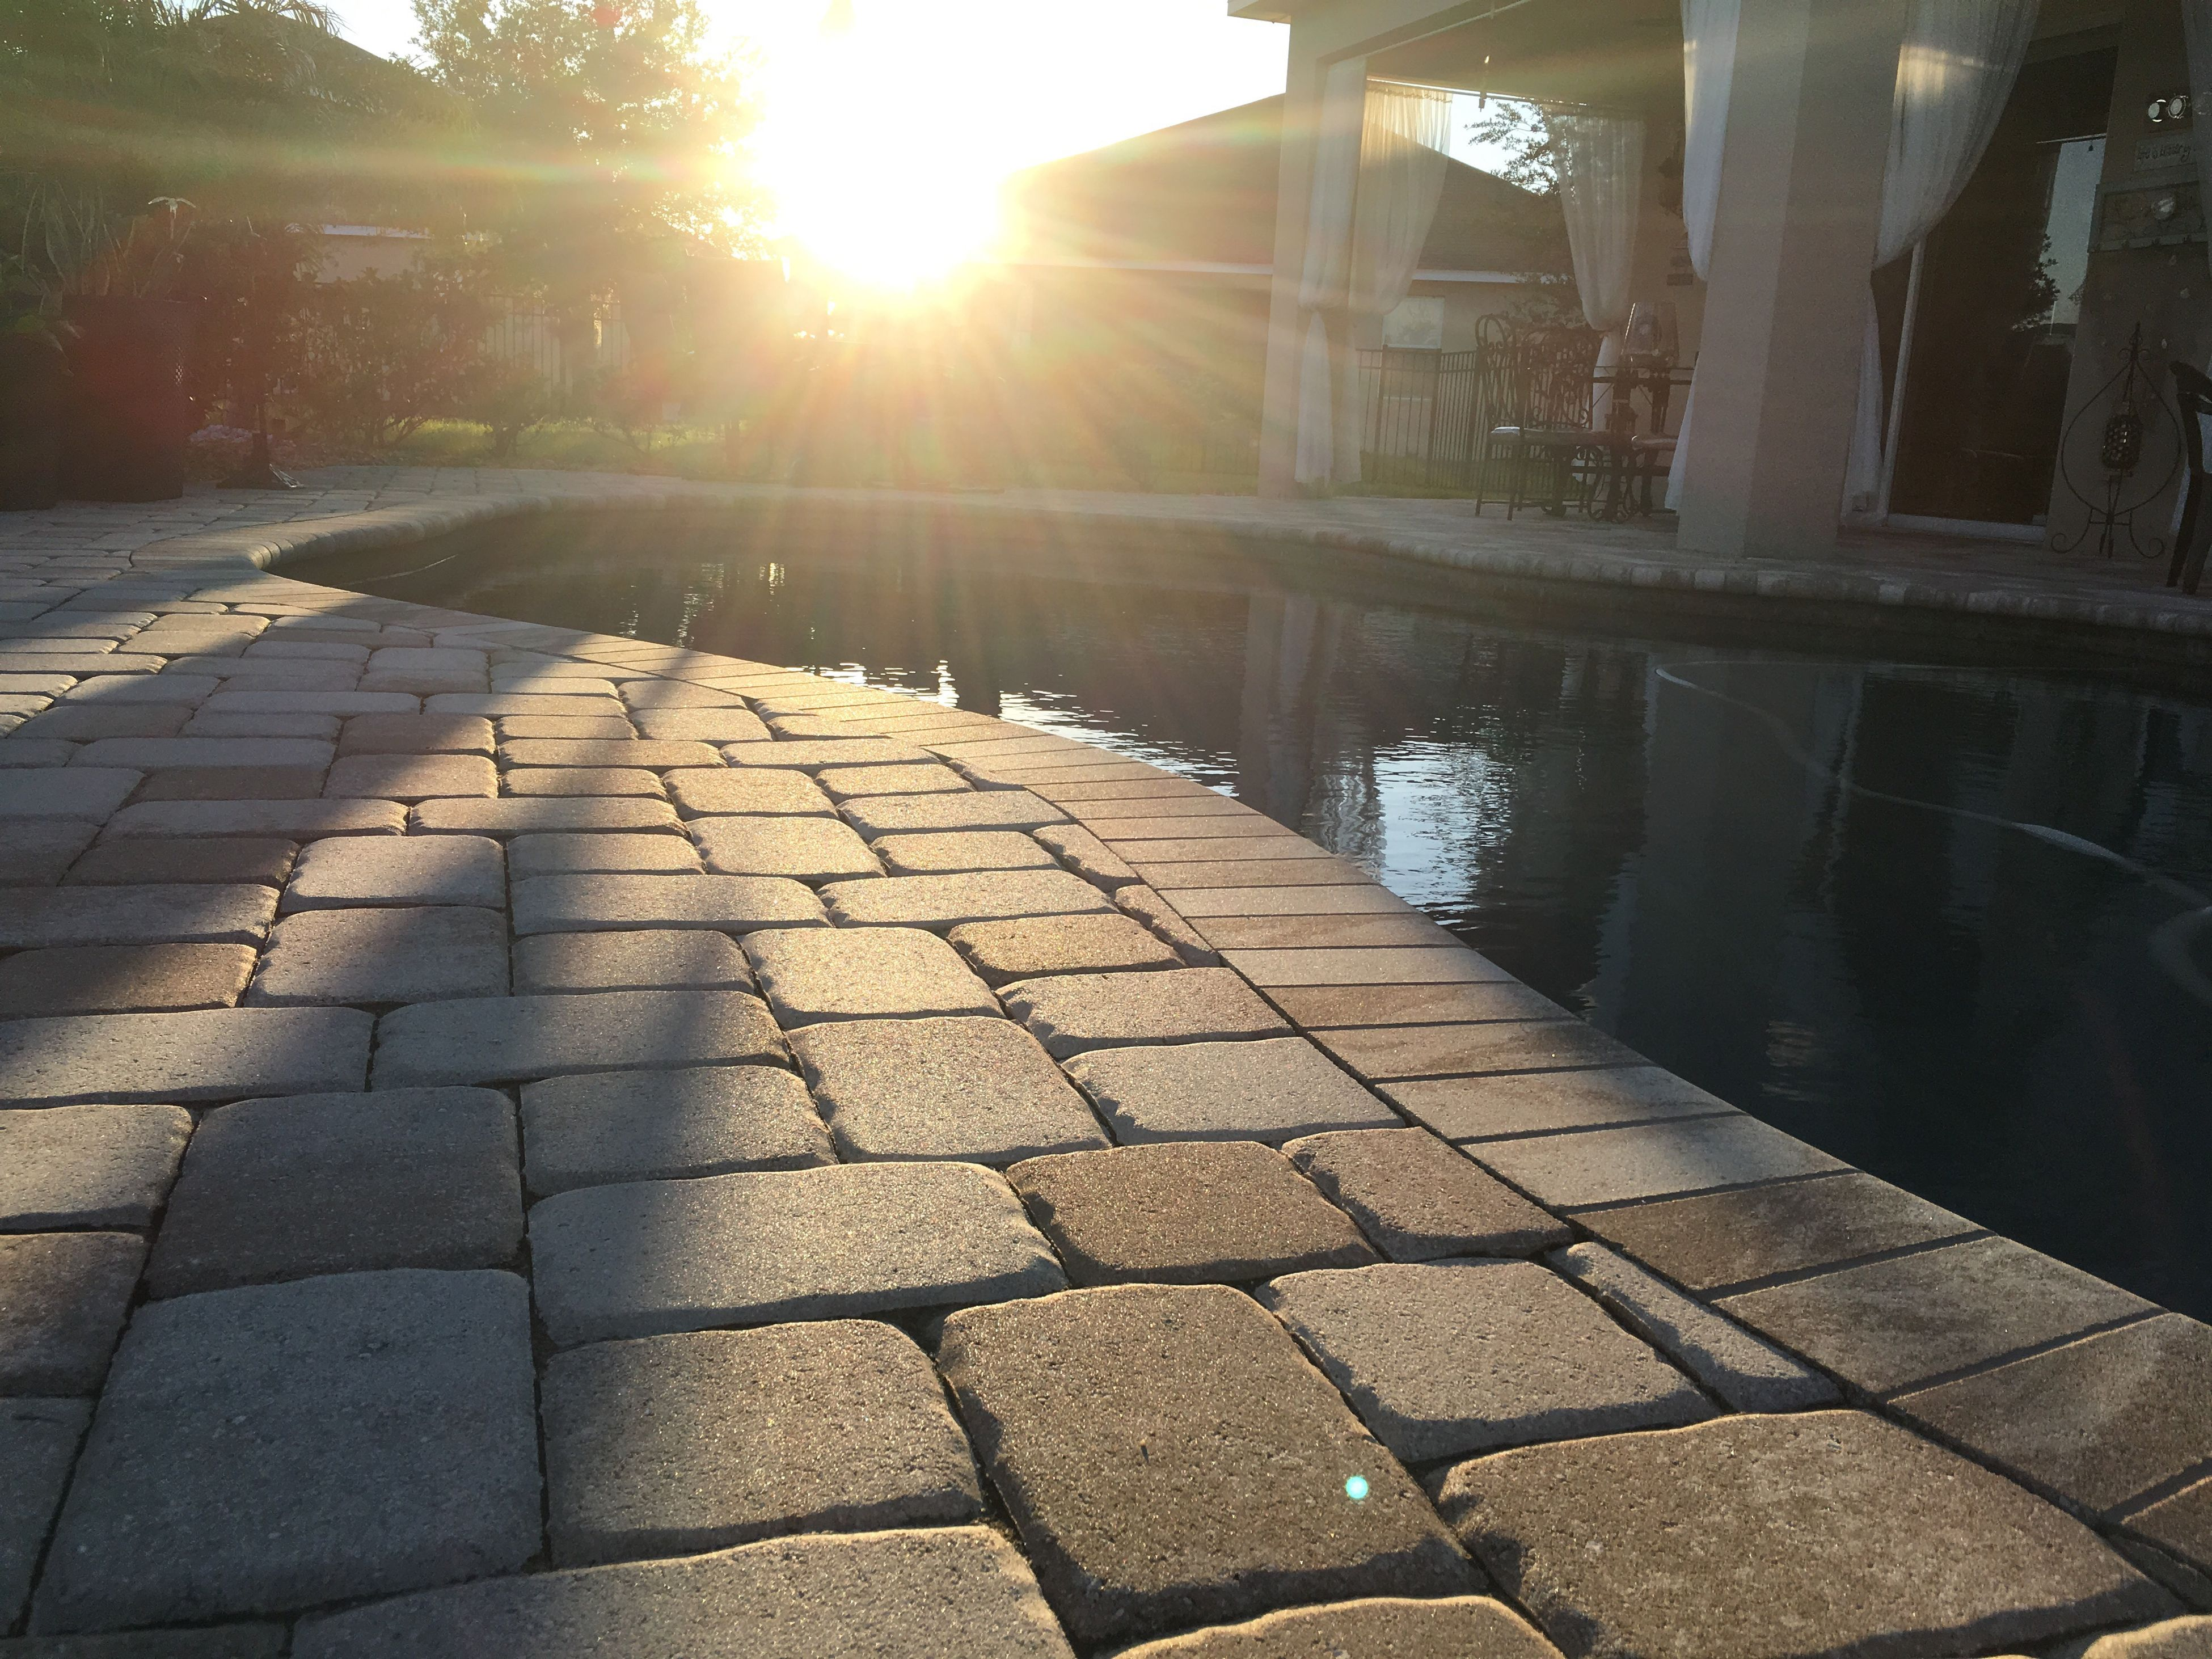 sun, sunlight, sunbeam, cobblestone, lens flare, sunny, paving stone, shadow, built structure, the way forward, footpath, architecture, outdoors, walkway, no people, bright, day, building exterior, railing, pattern